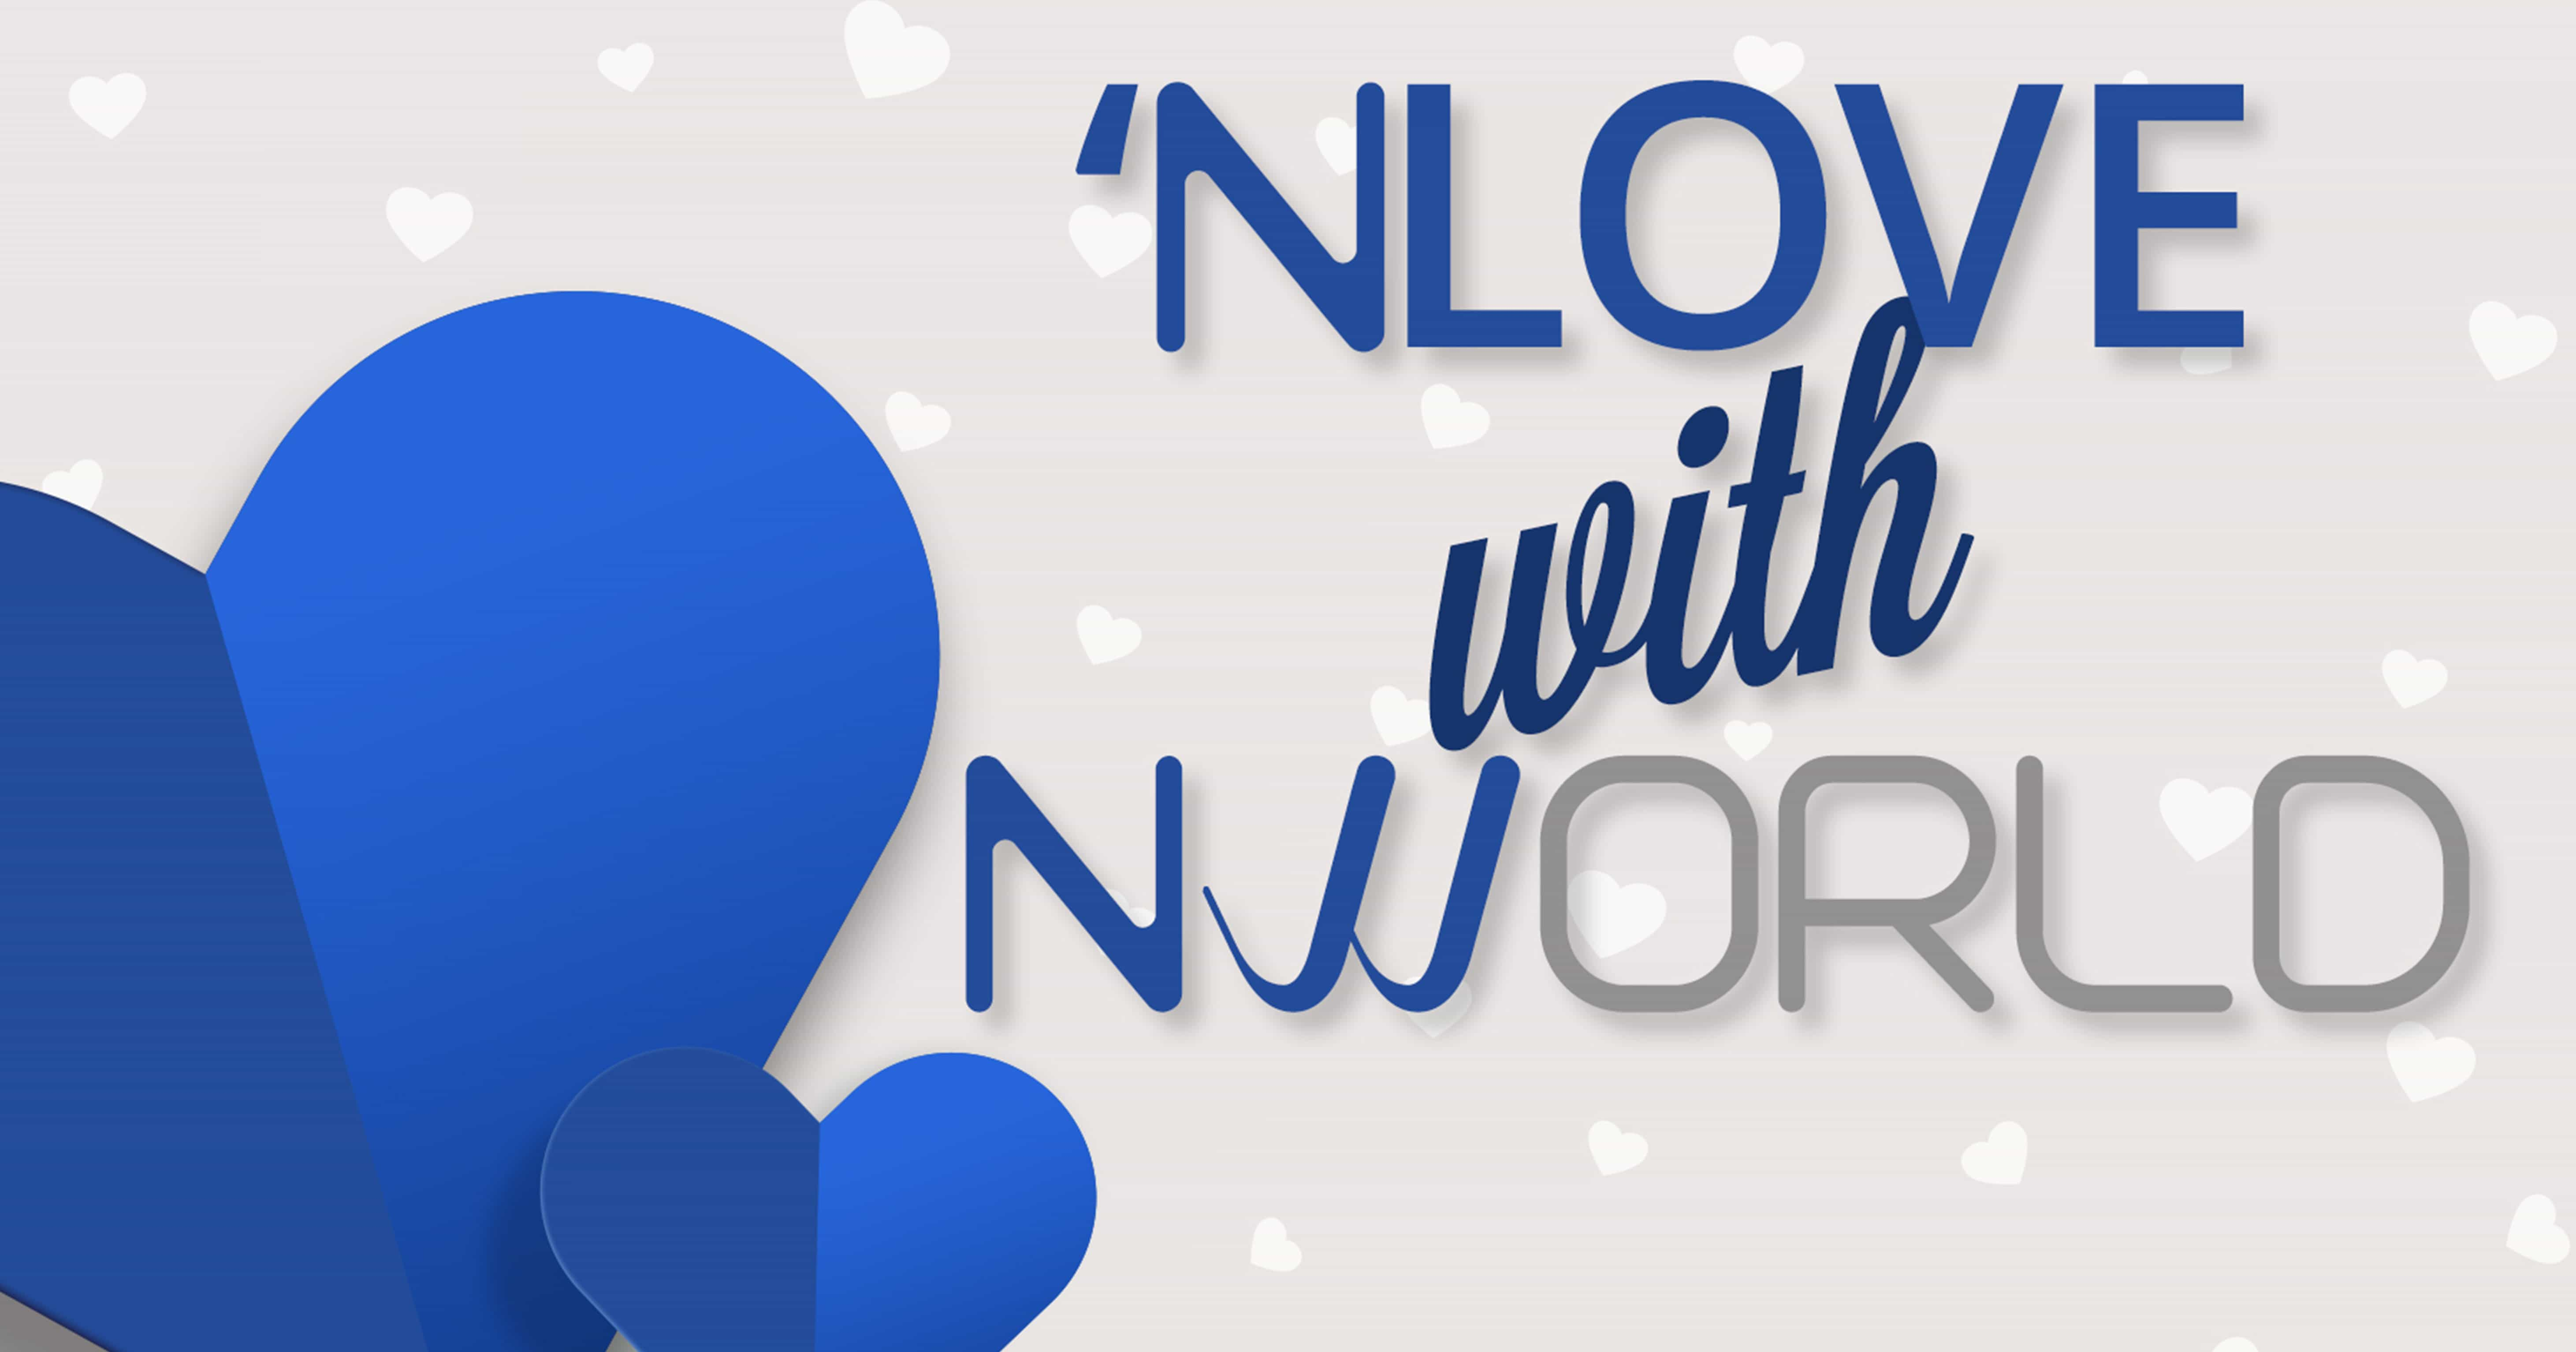 'NLOVE WITH NWORLD